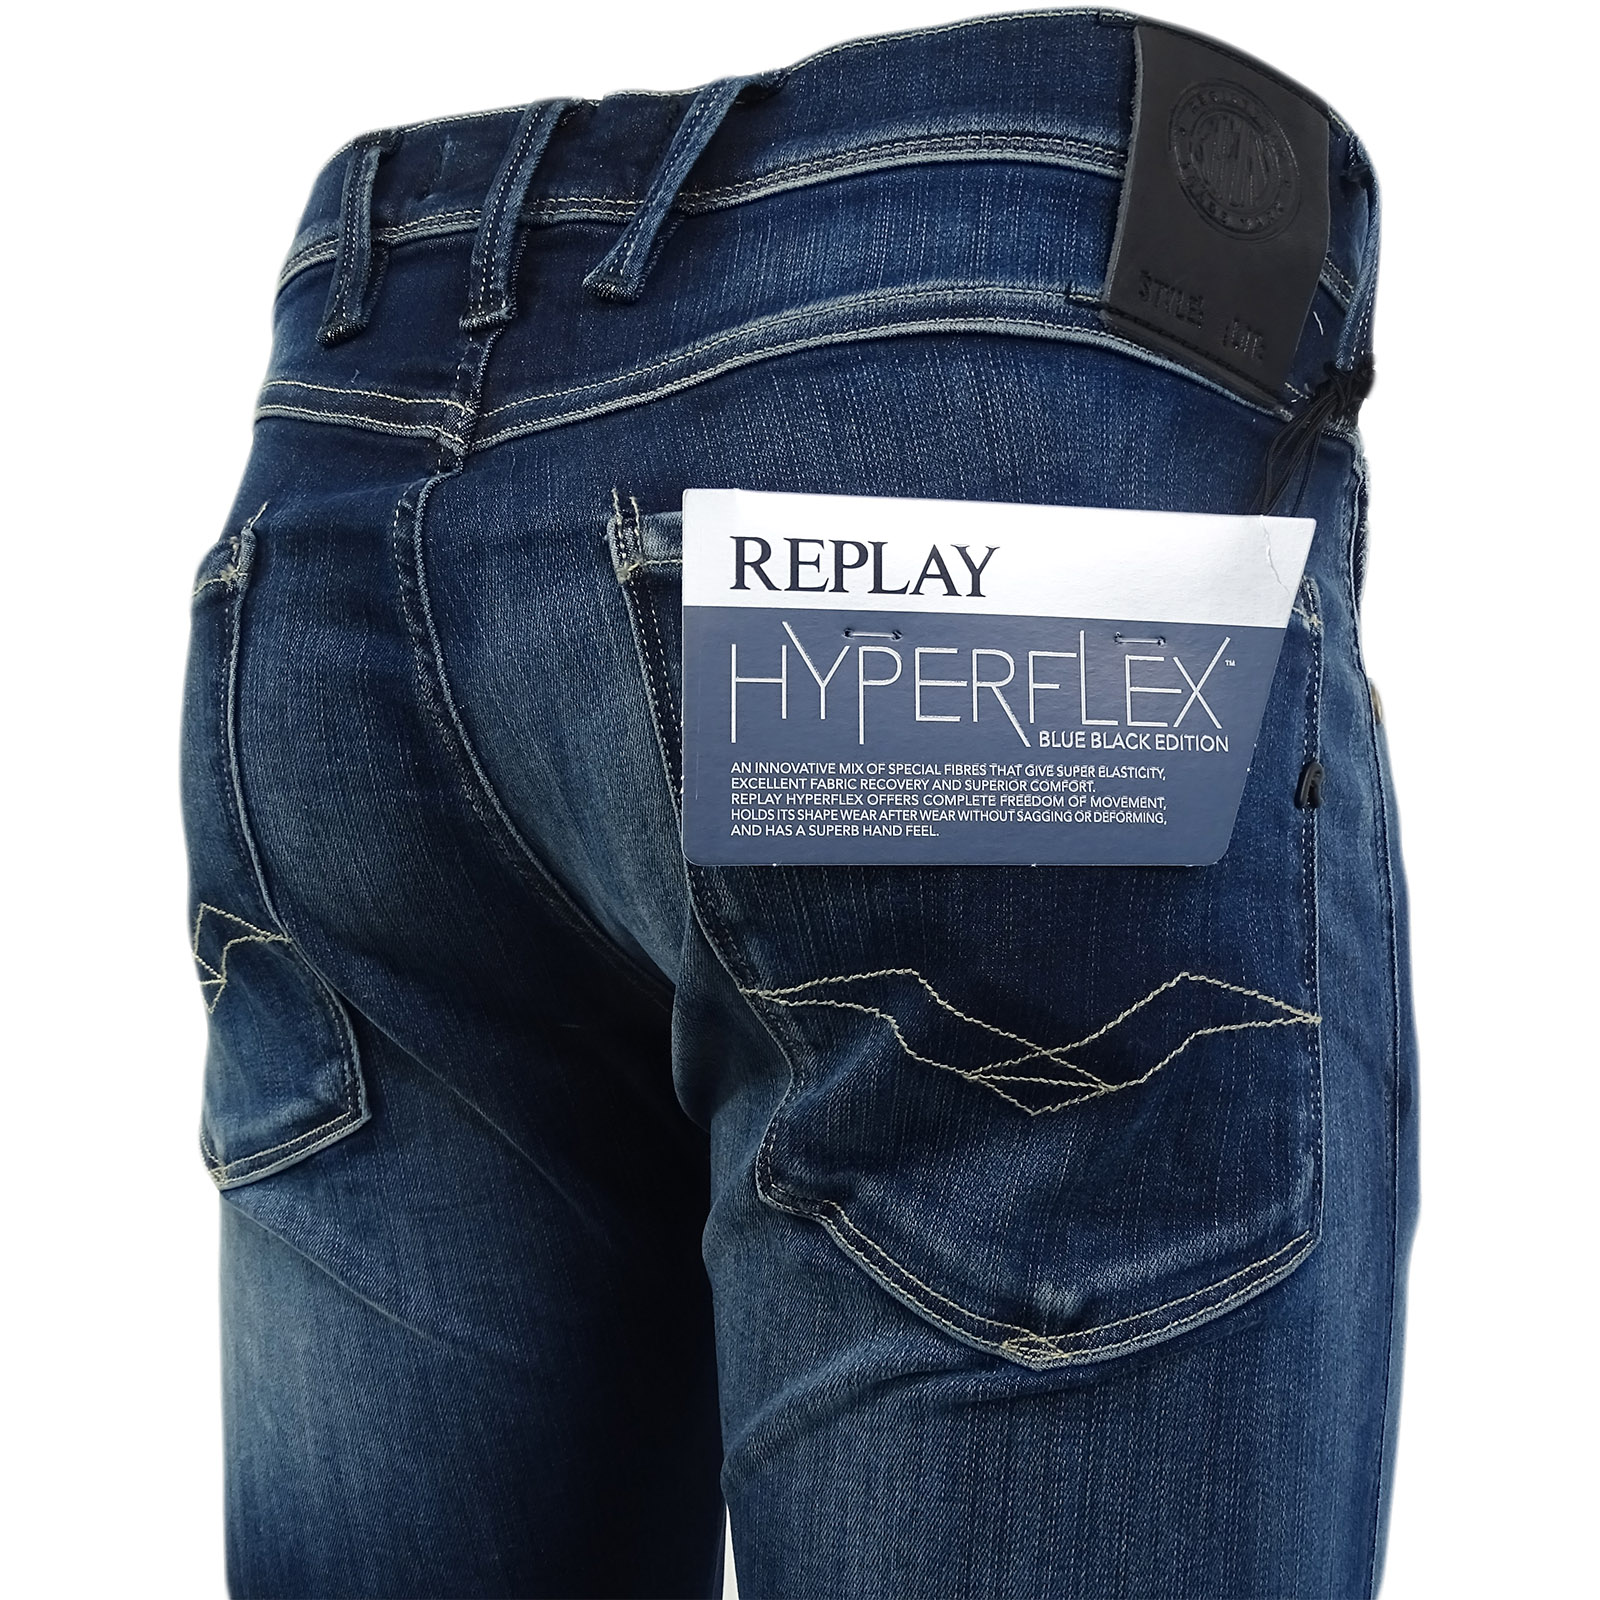 03613768 Sentinel Replay M914-661-02d Slim Fit Jean / Denim Pants